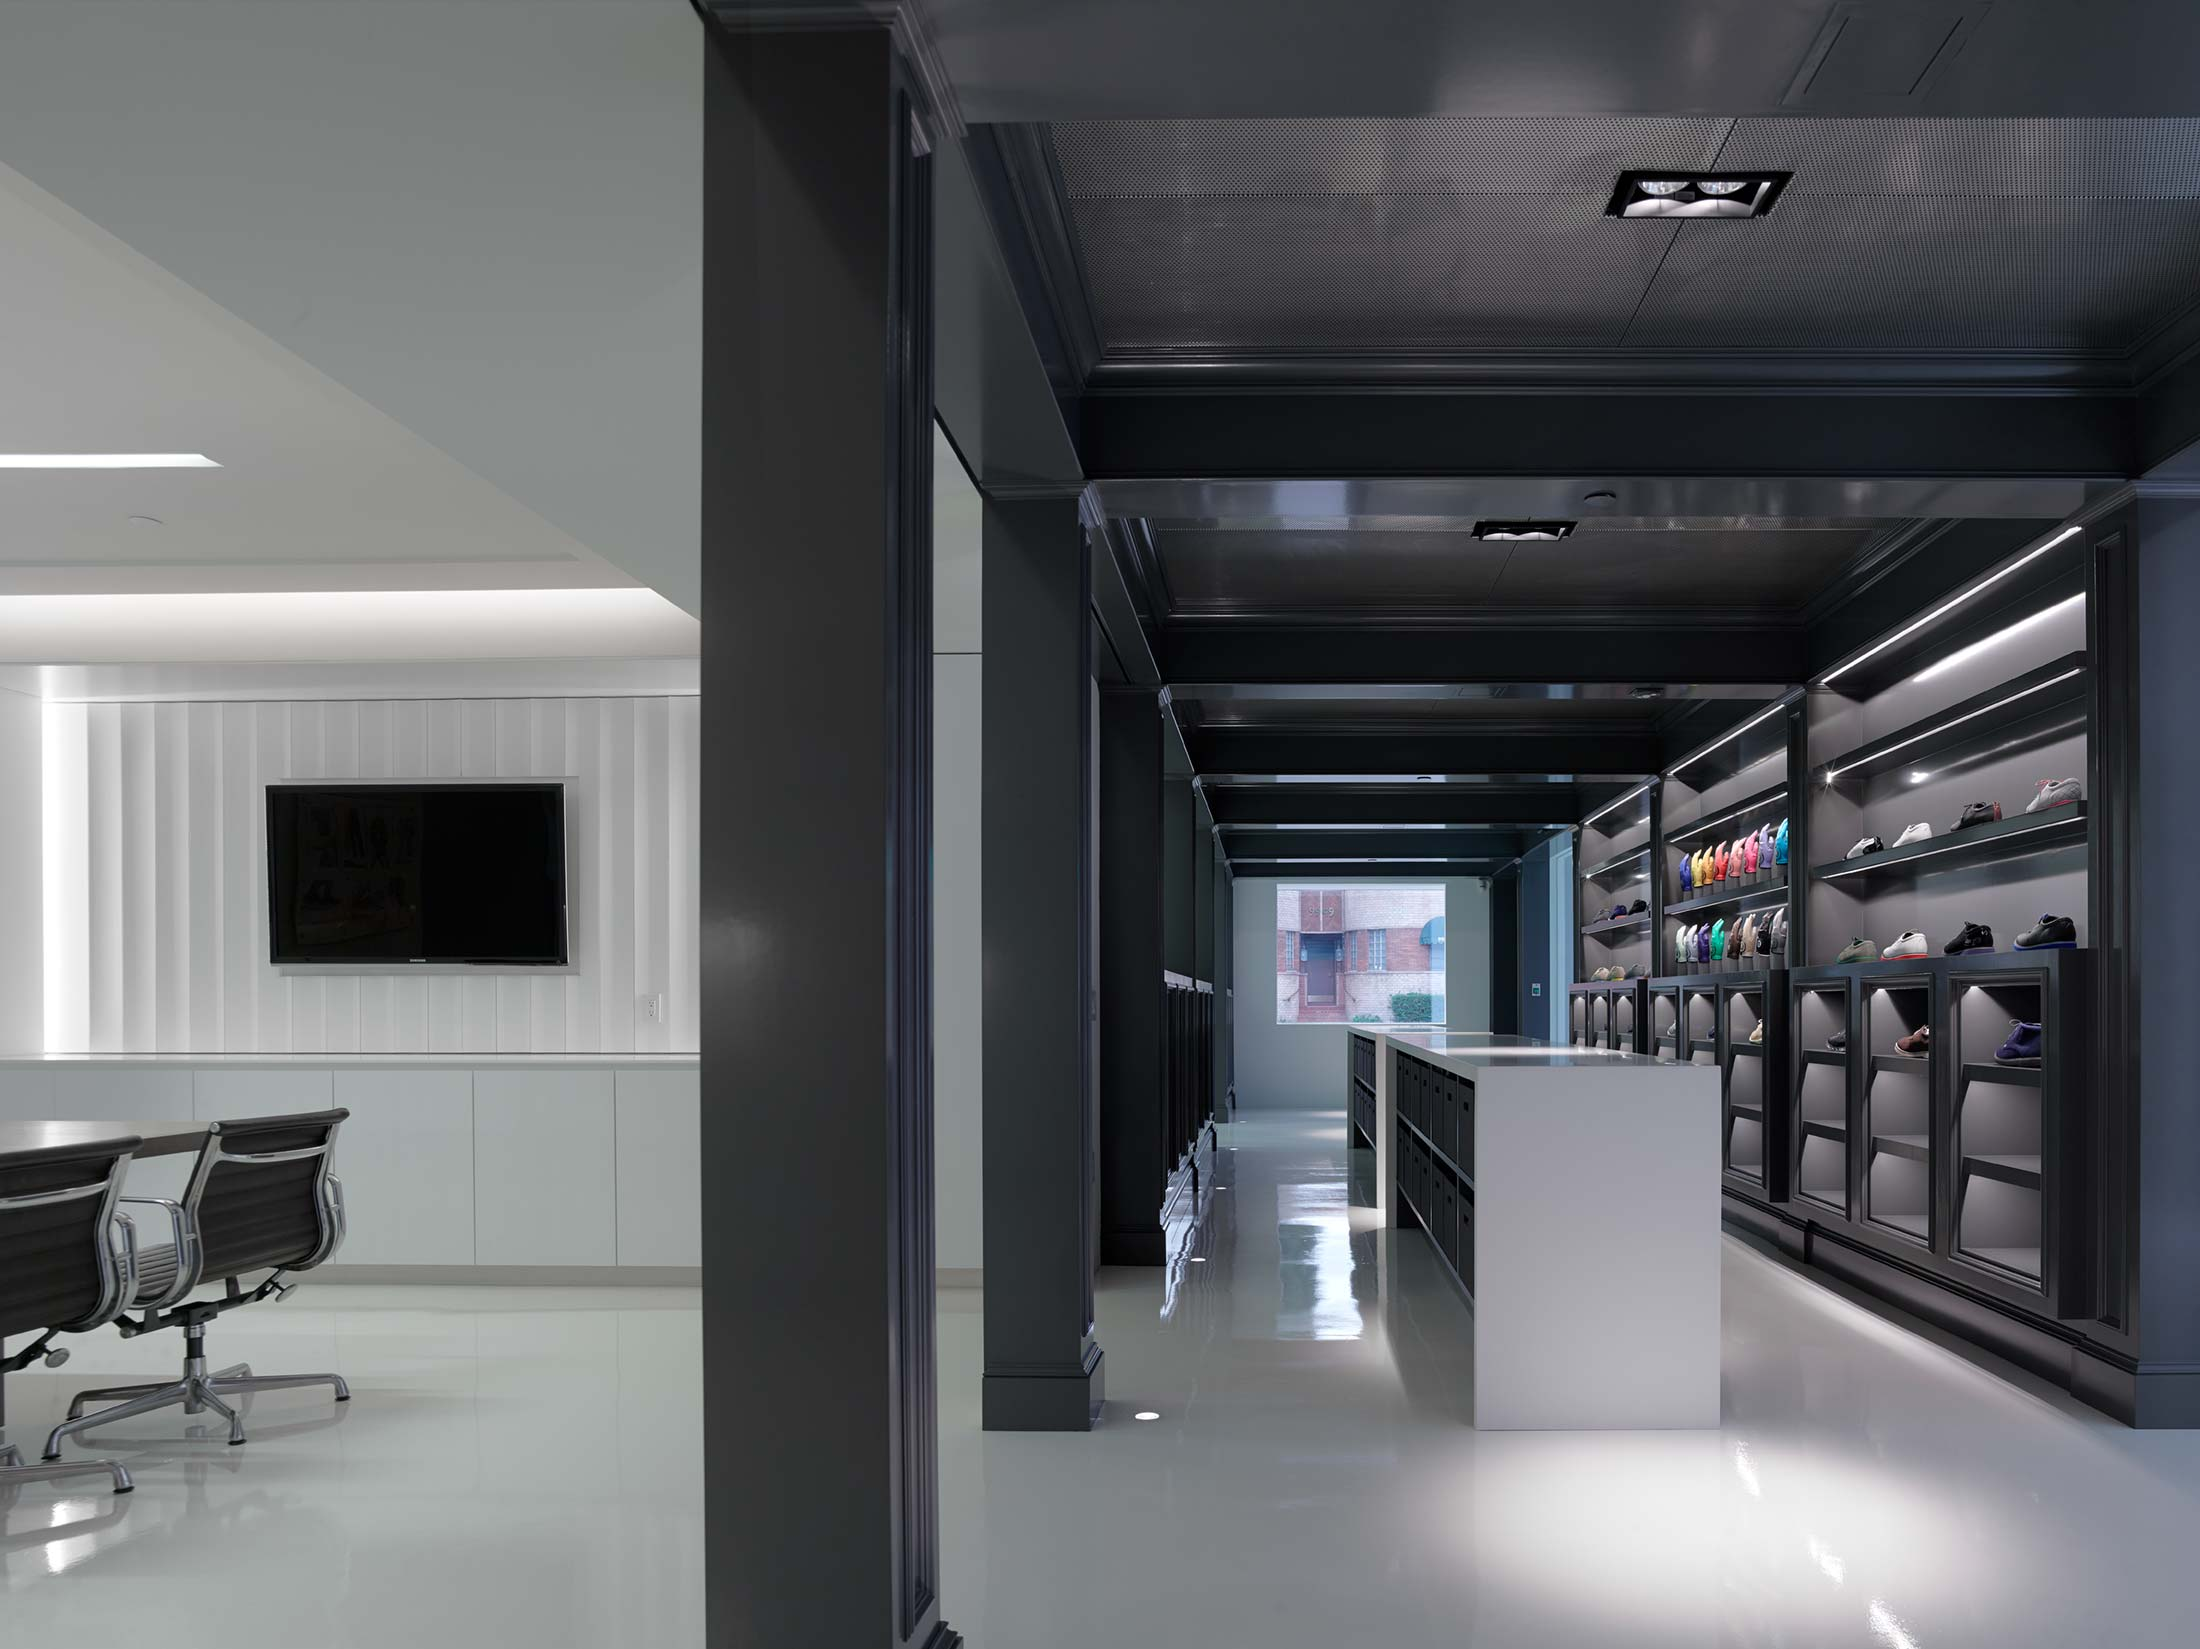 modern-architecture-commercial-interiors-workplace-retail-branded-california-shubindonaldson-gfore-01